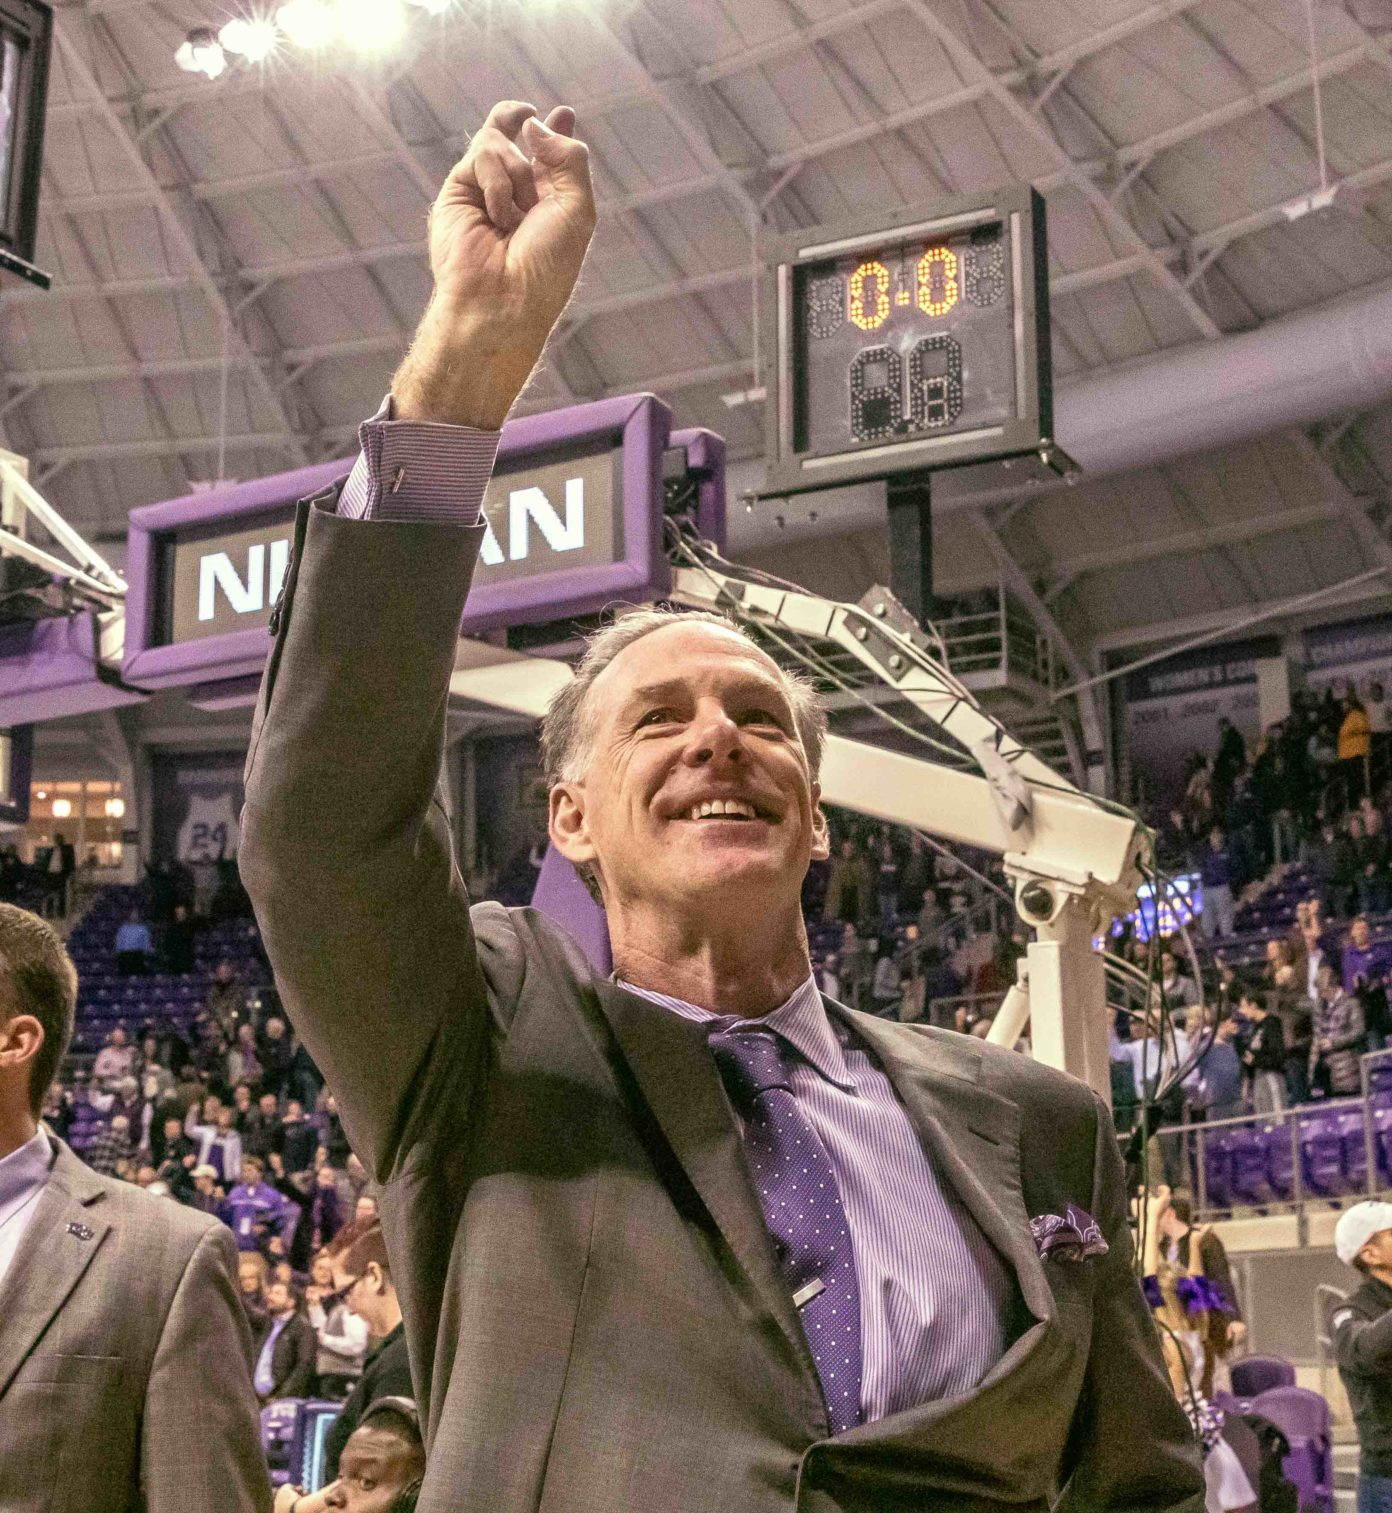 A Day with Dixon: An all-access look into a day with TCU's basketball coach